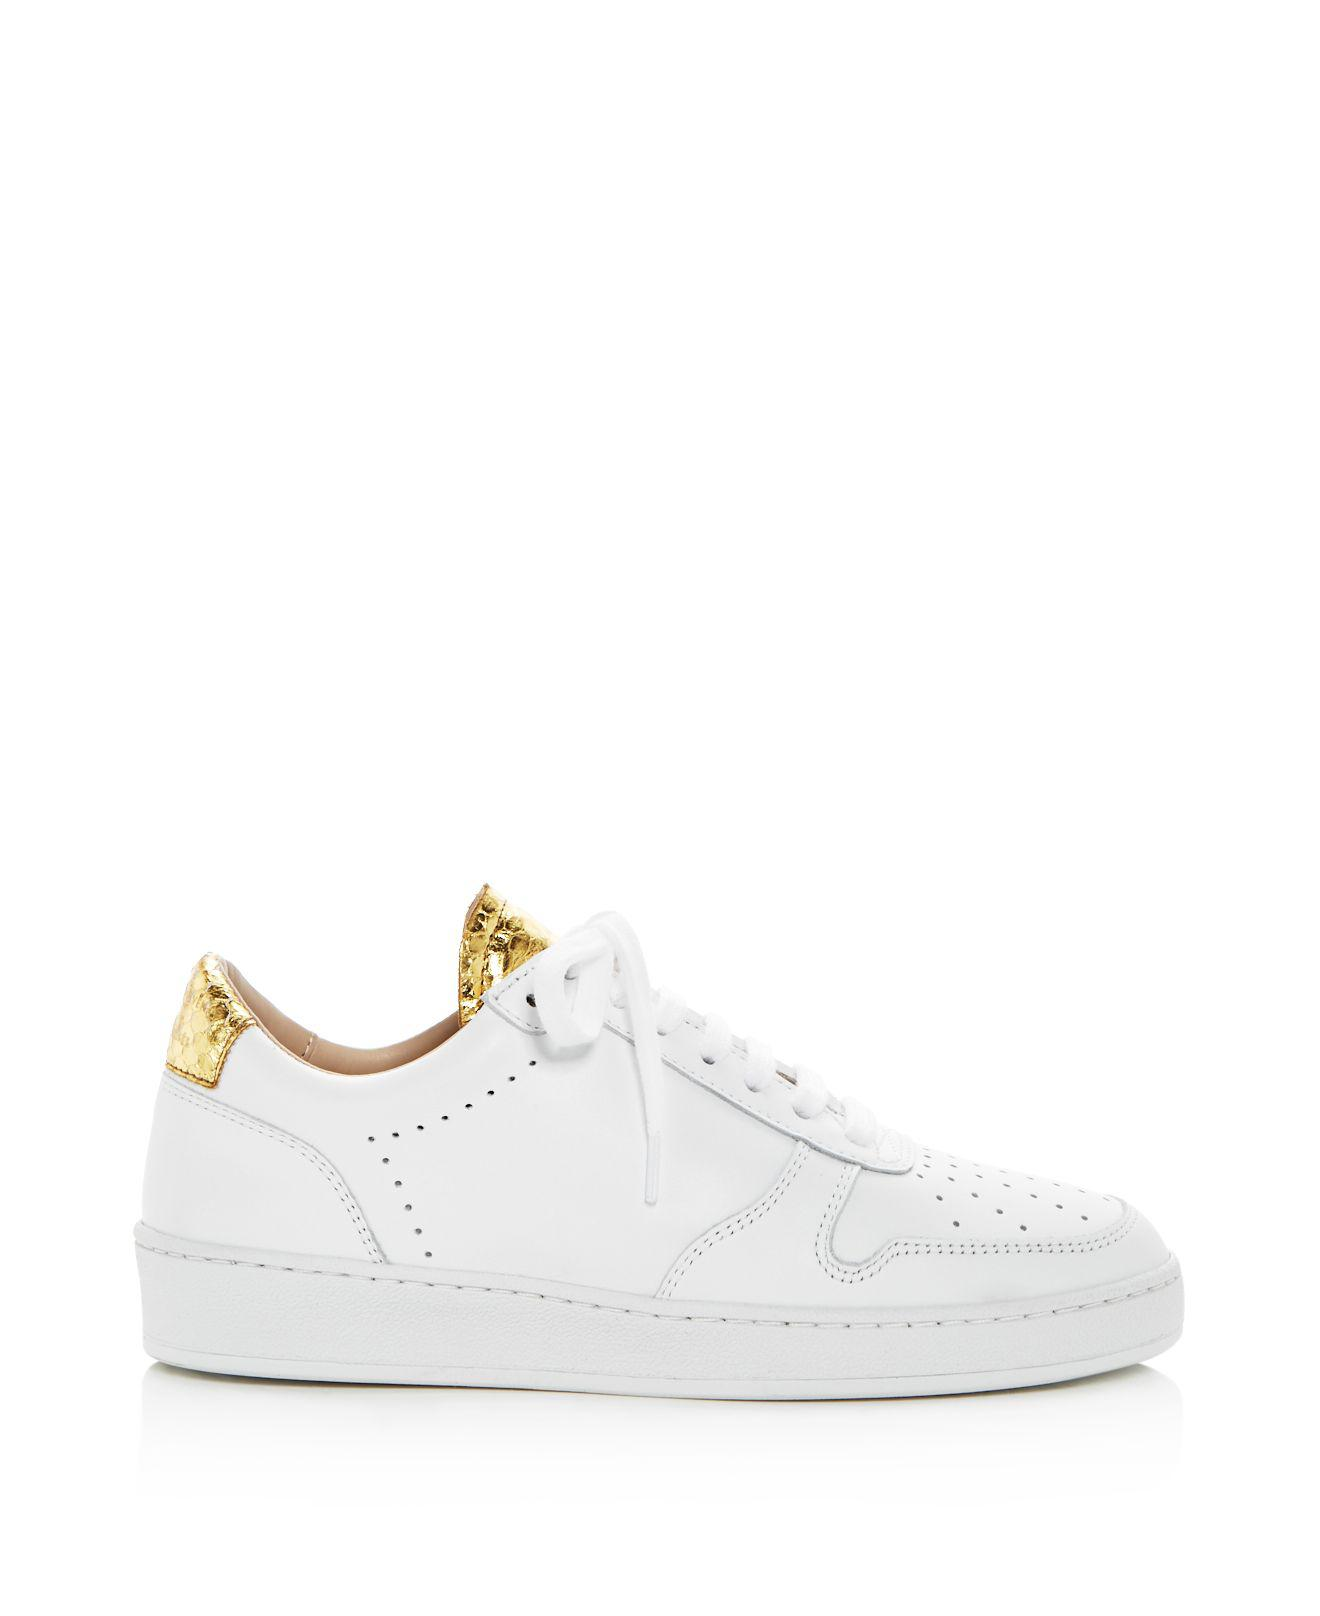 perforated lace-up sneakers - White Zespà ED4TVHH